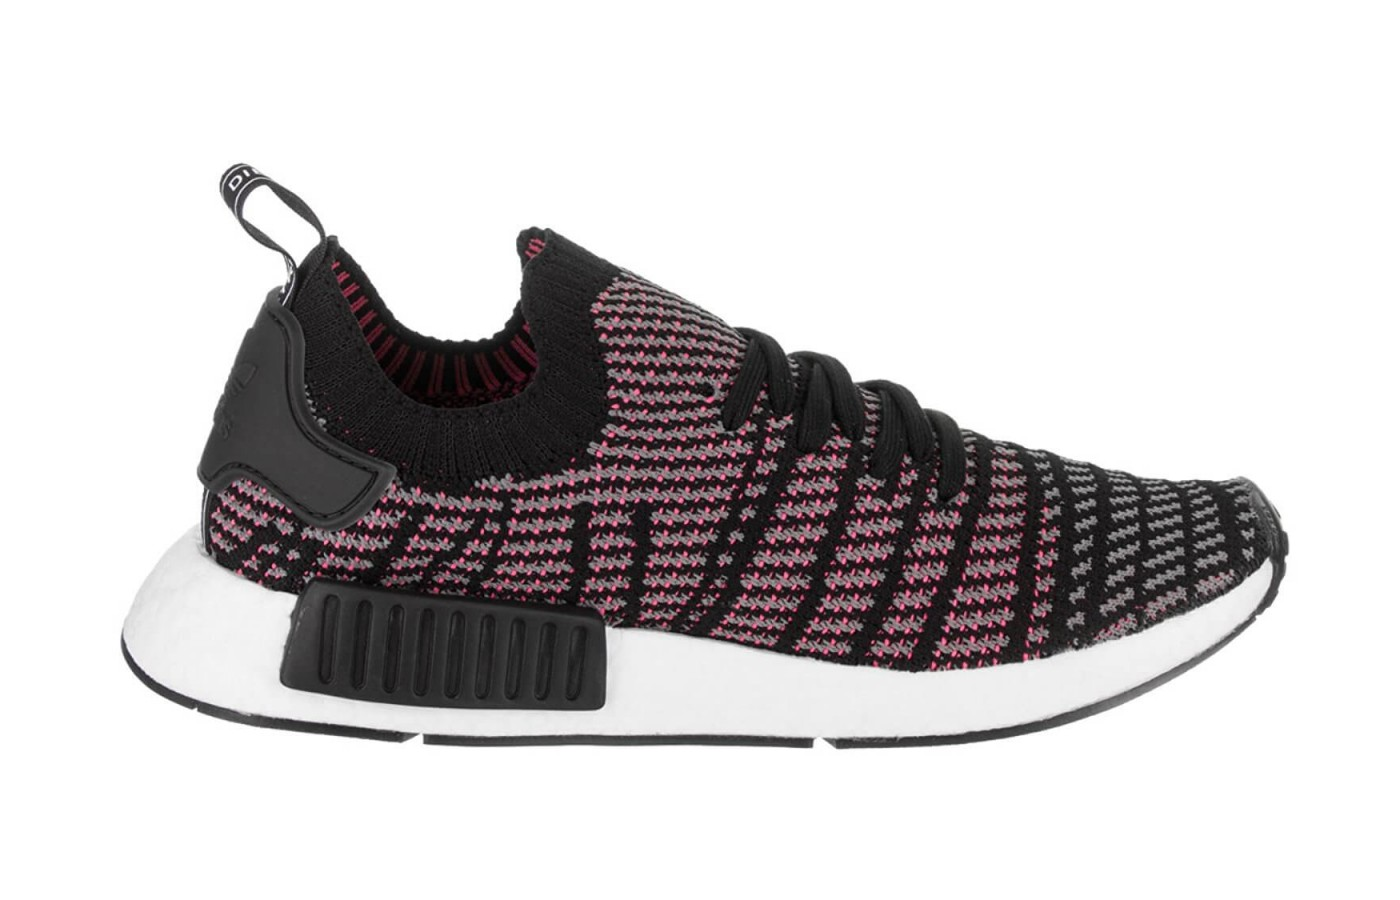 a80dee1ee ... The Adidas NMD R1 Stlt Primeknit features a Boost midsole ...